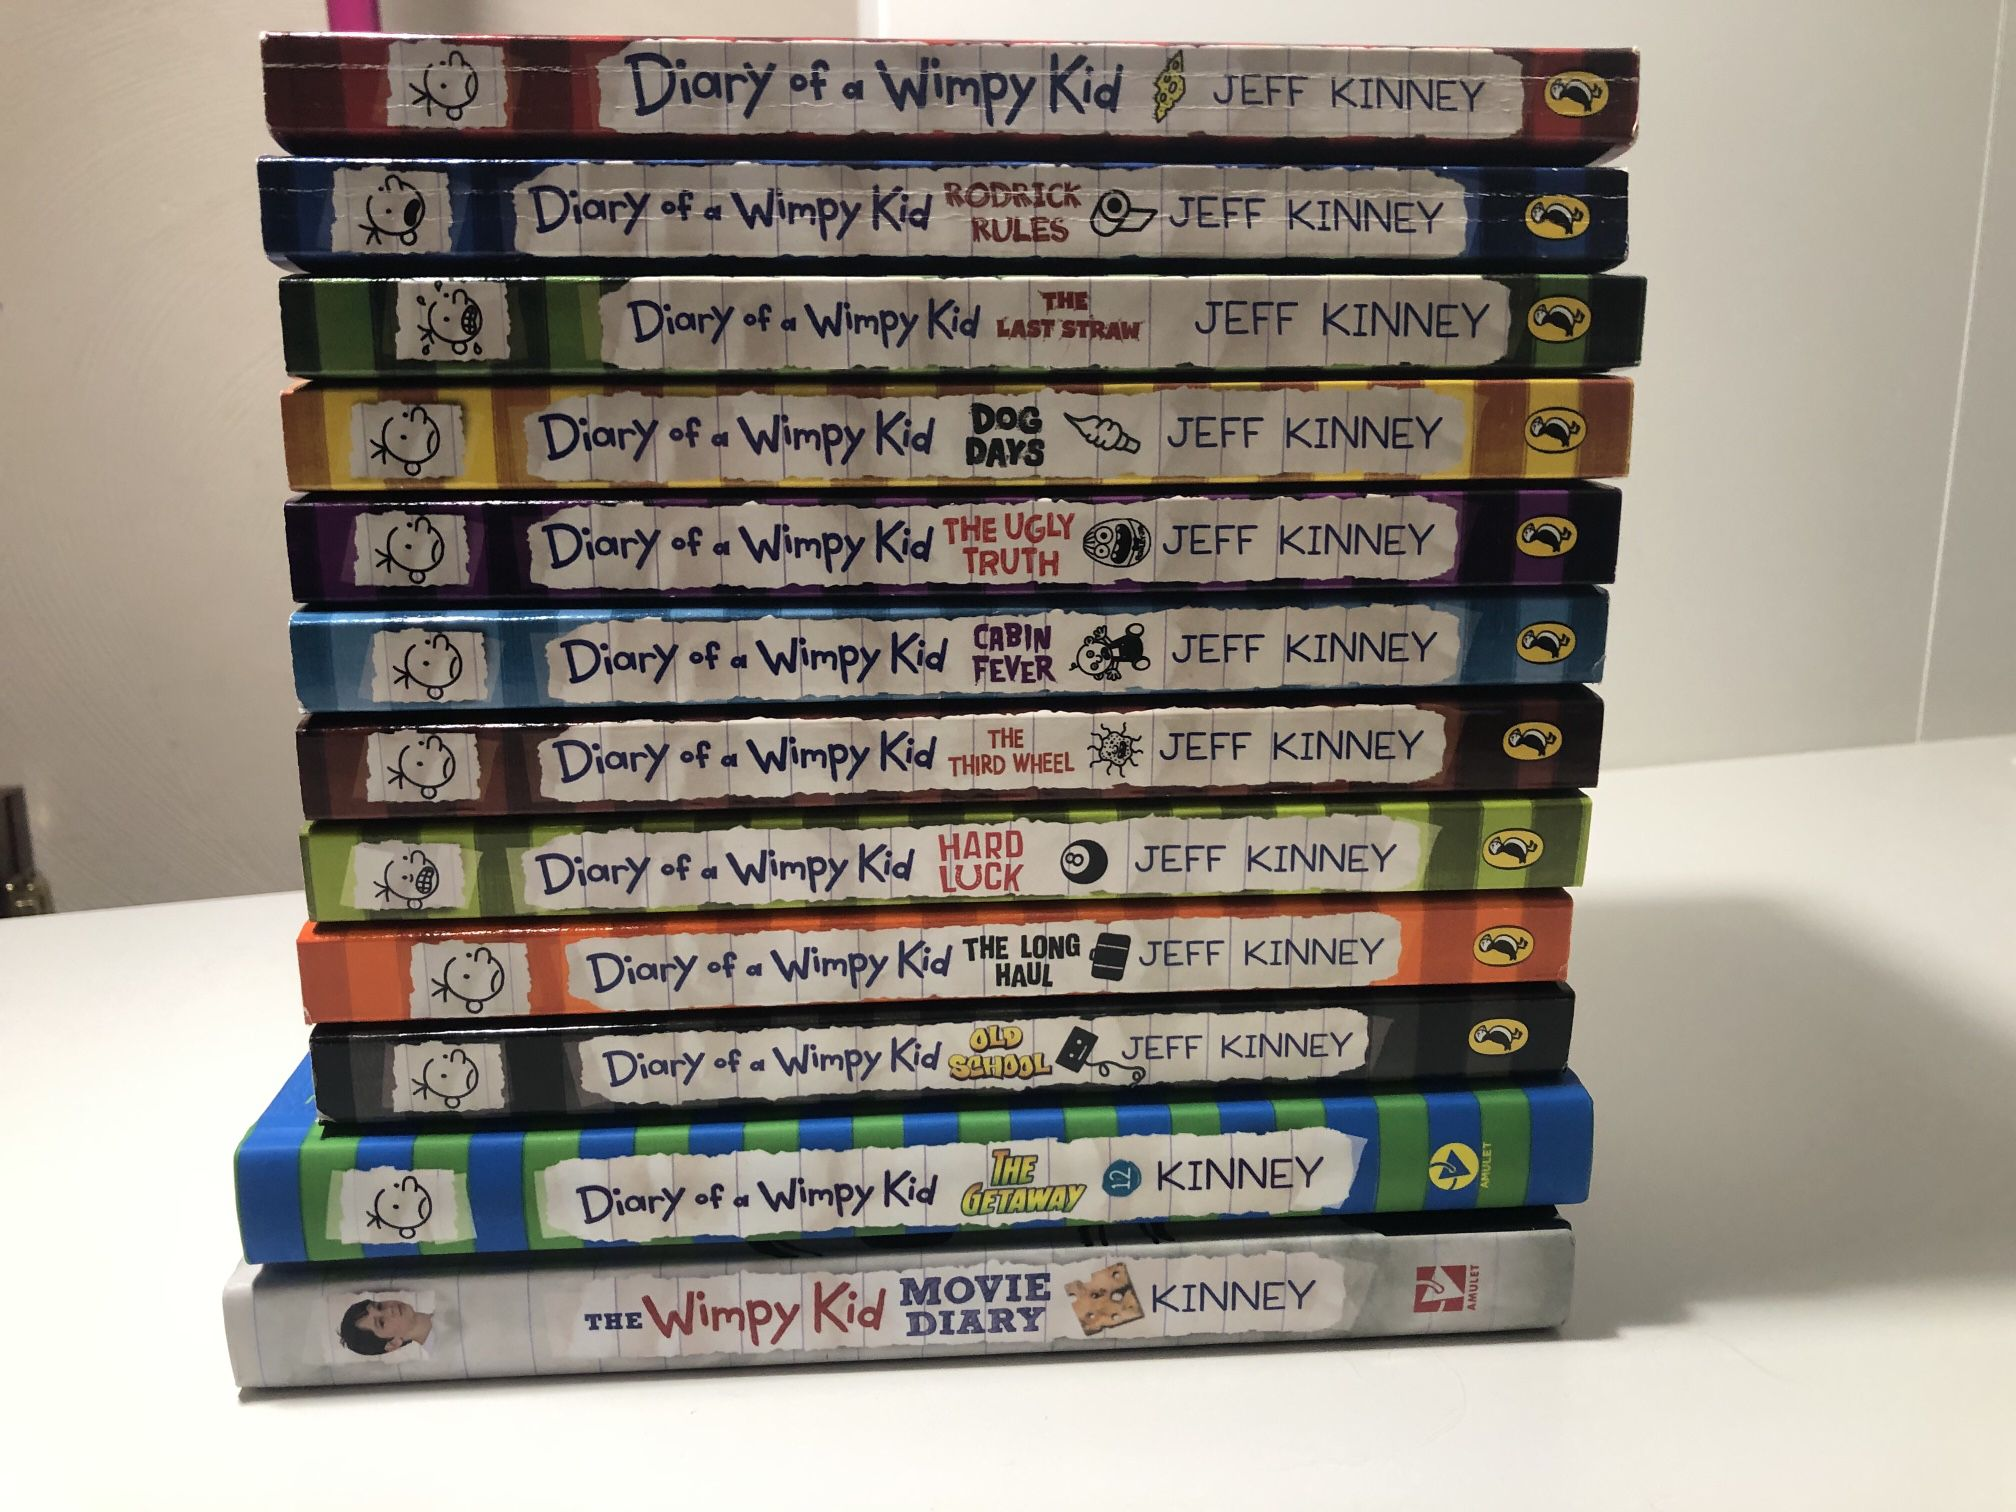 12 Diary Of A Wimpy Kid Books